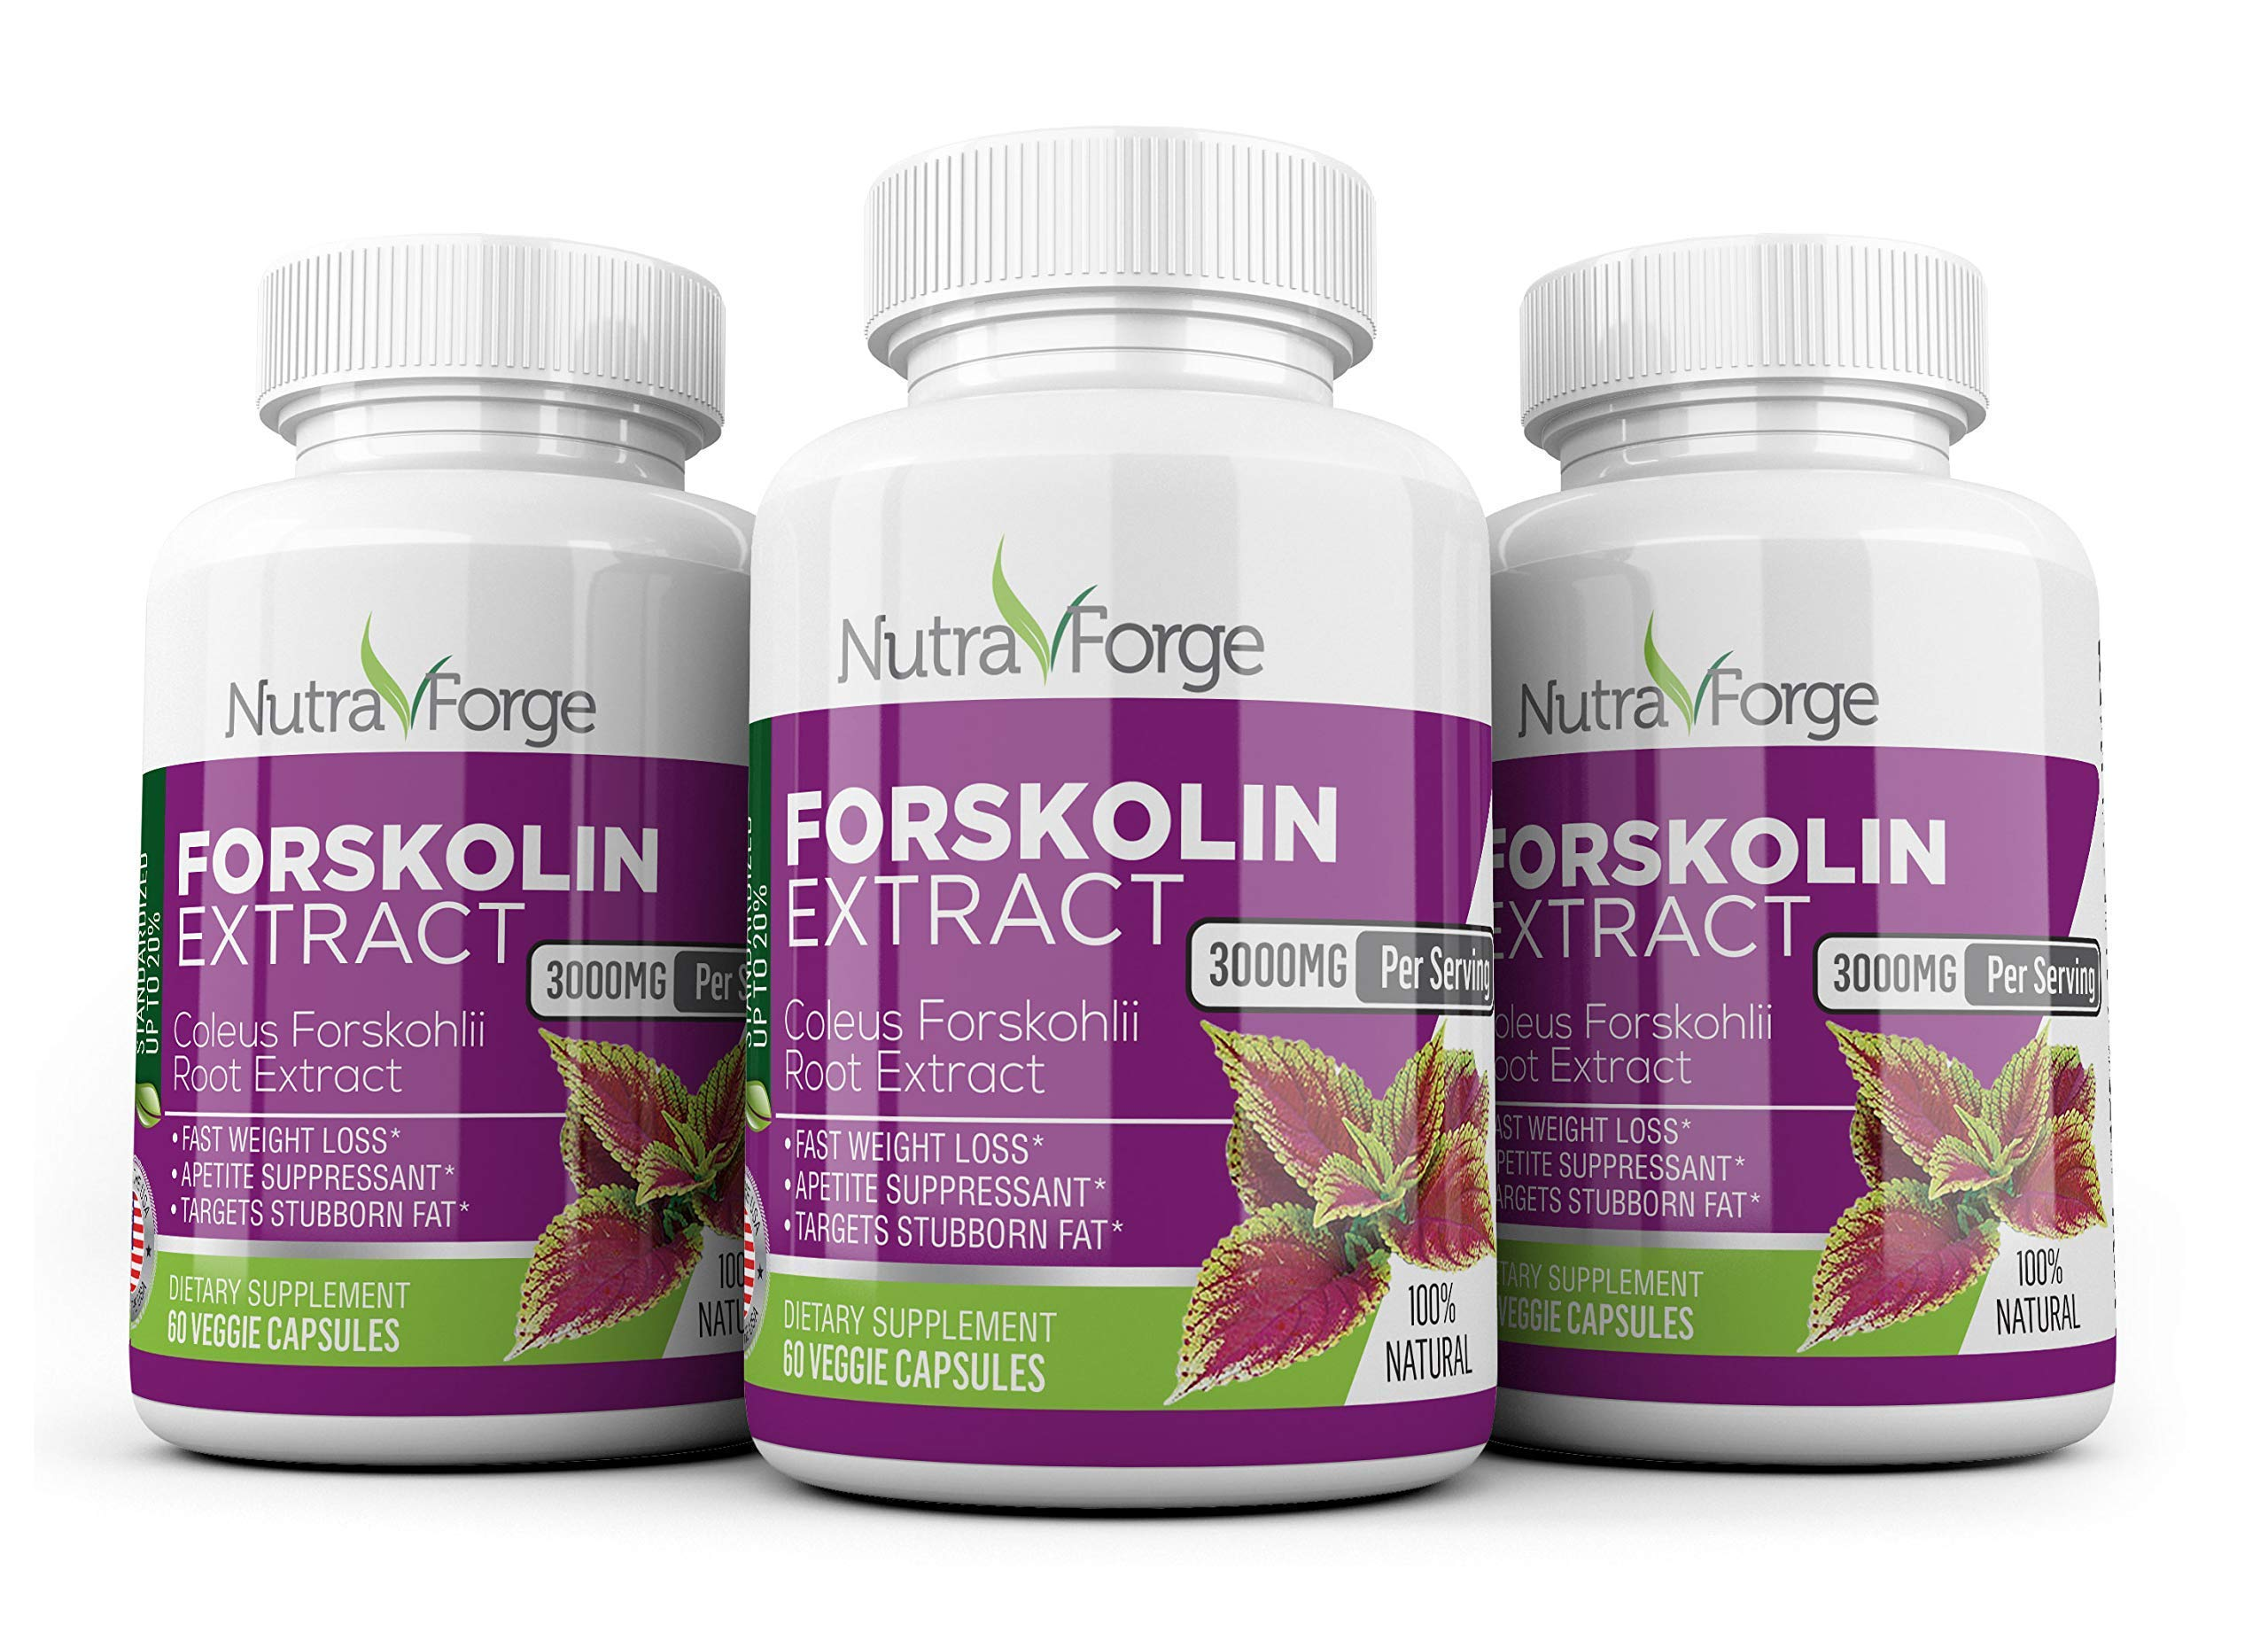 Pure Forskolin 3000mg Max Strength - Forskolin Extract for Weight Loss - Premium Appetite Suppressant, Metabolism Booster, Carb Blocker & Fat Burner for Men and Women - 3 Pack by Nutra Forge (Image #1)